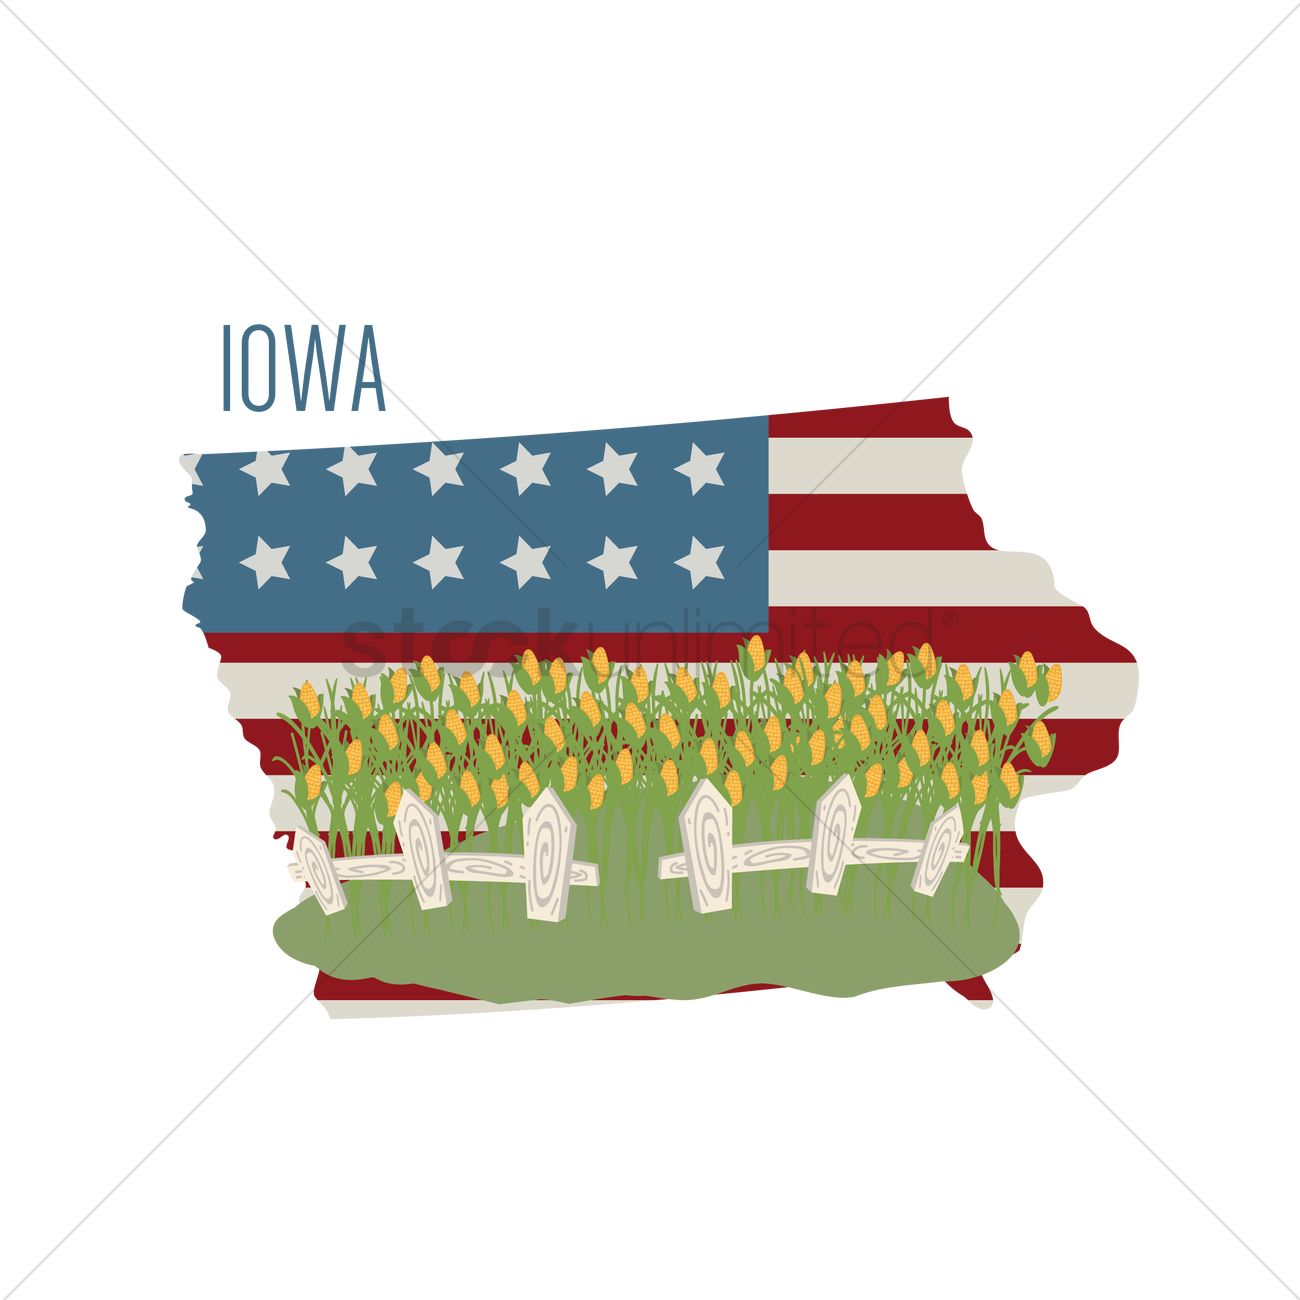 Iowa State Map With Corn Field Vector Image StockUnlimited - Map usa iowa